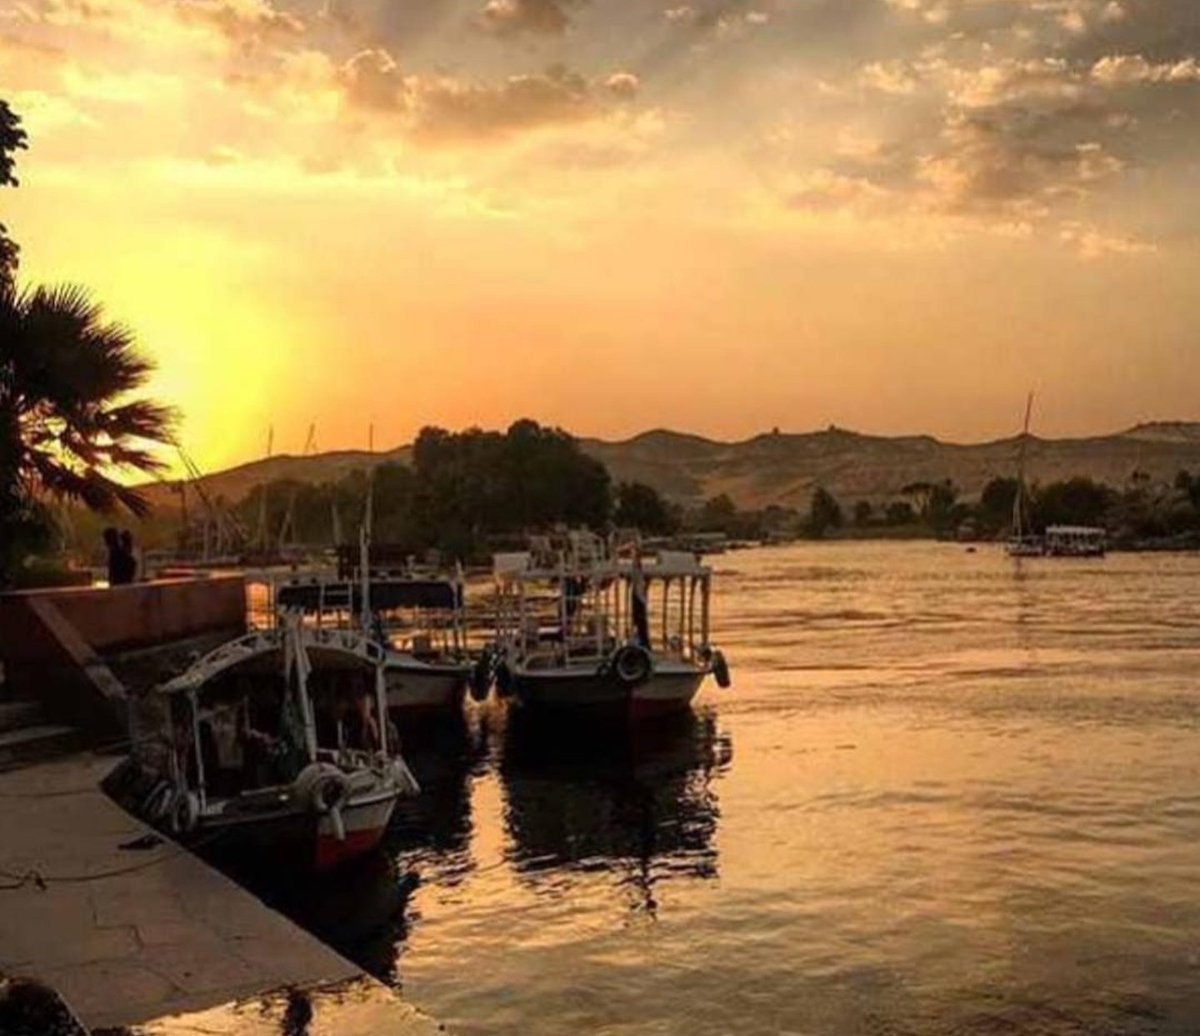 Breathtaking views that last a lifetime. This is what the world looks like from The Sofitel Legend Old Cataract.📸@egypt.luxury  #SofitelWorld #LiveLikeLegends https://t.co/DTr8nvqeth